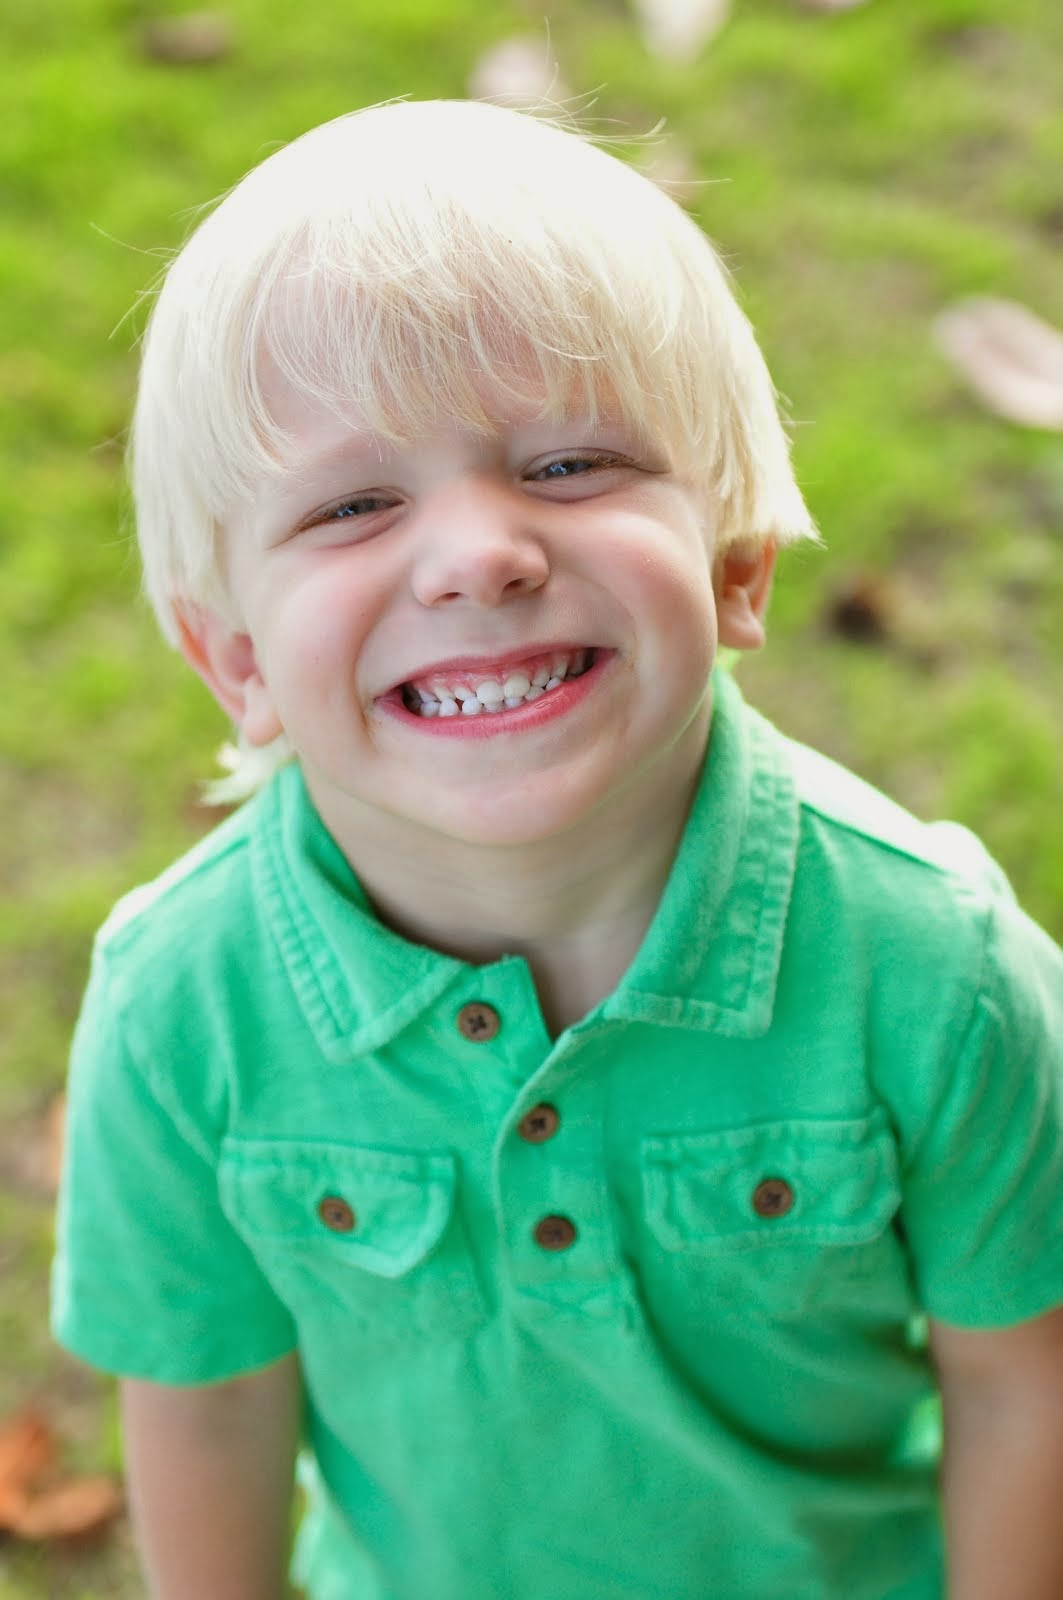 Connor 4 years old